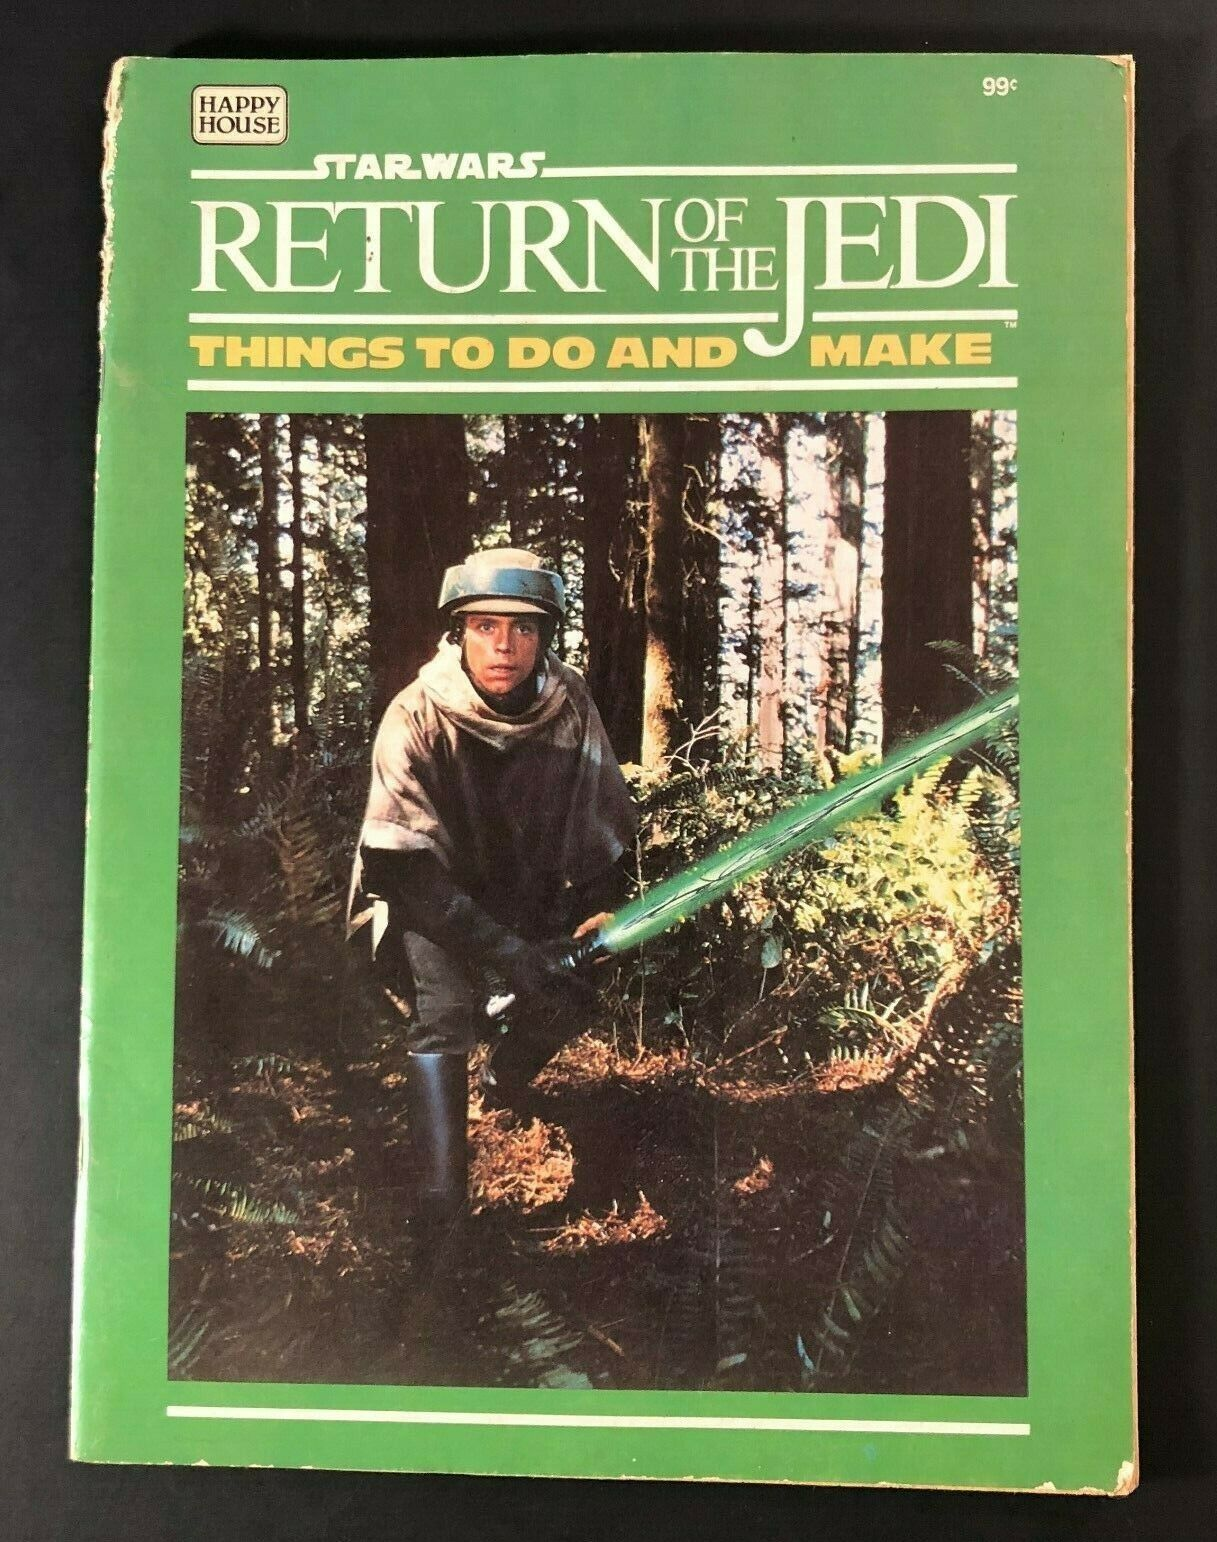 Star Wars Return of the Jedi: Things to Do and Make